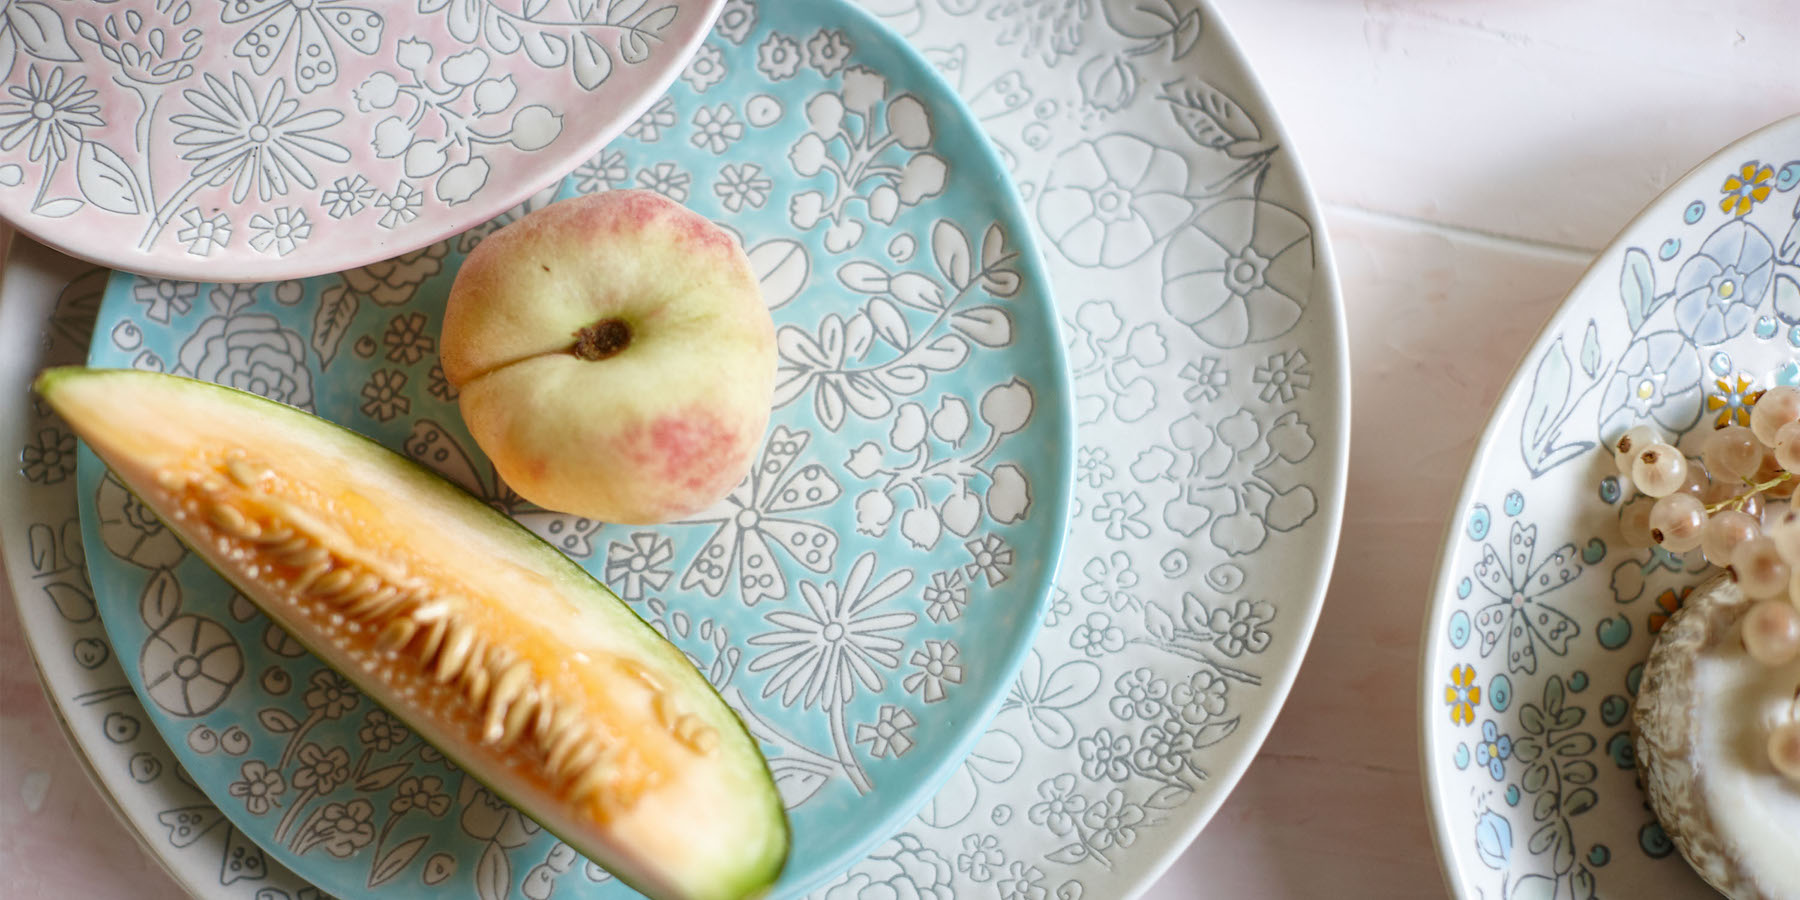 floral Dorothea Dishware with fruit